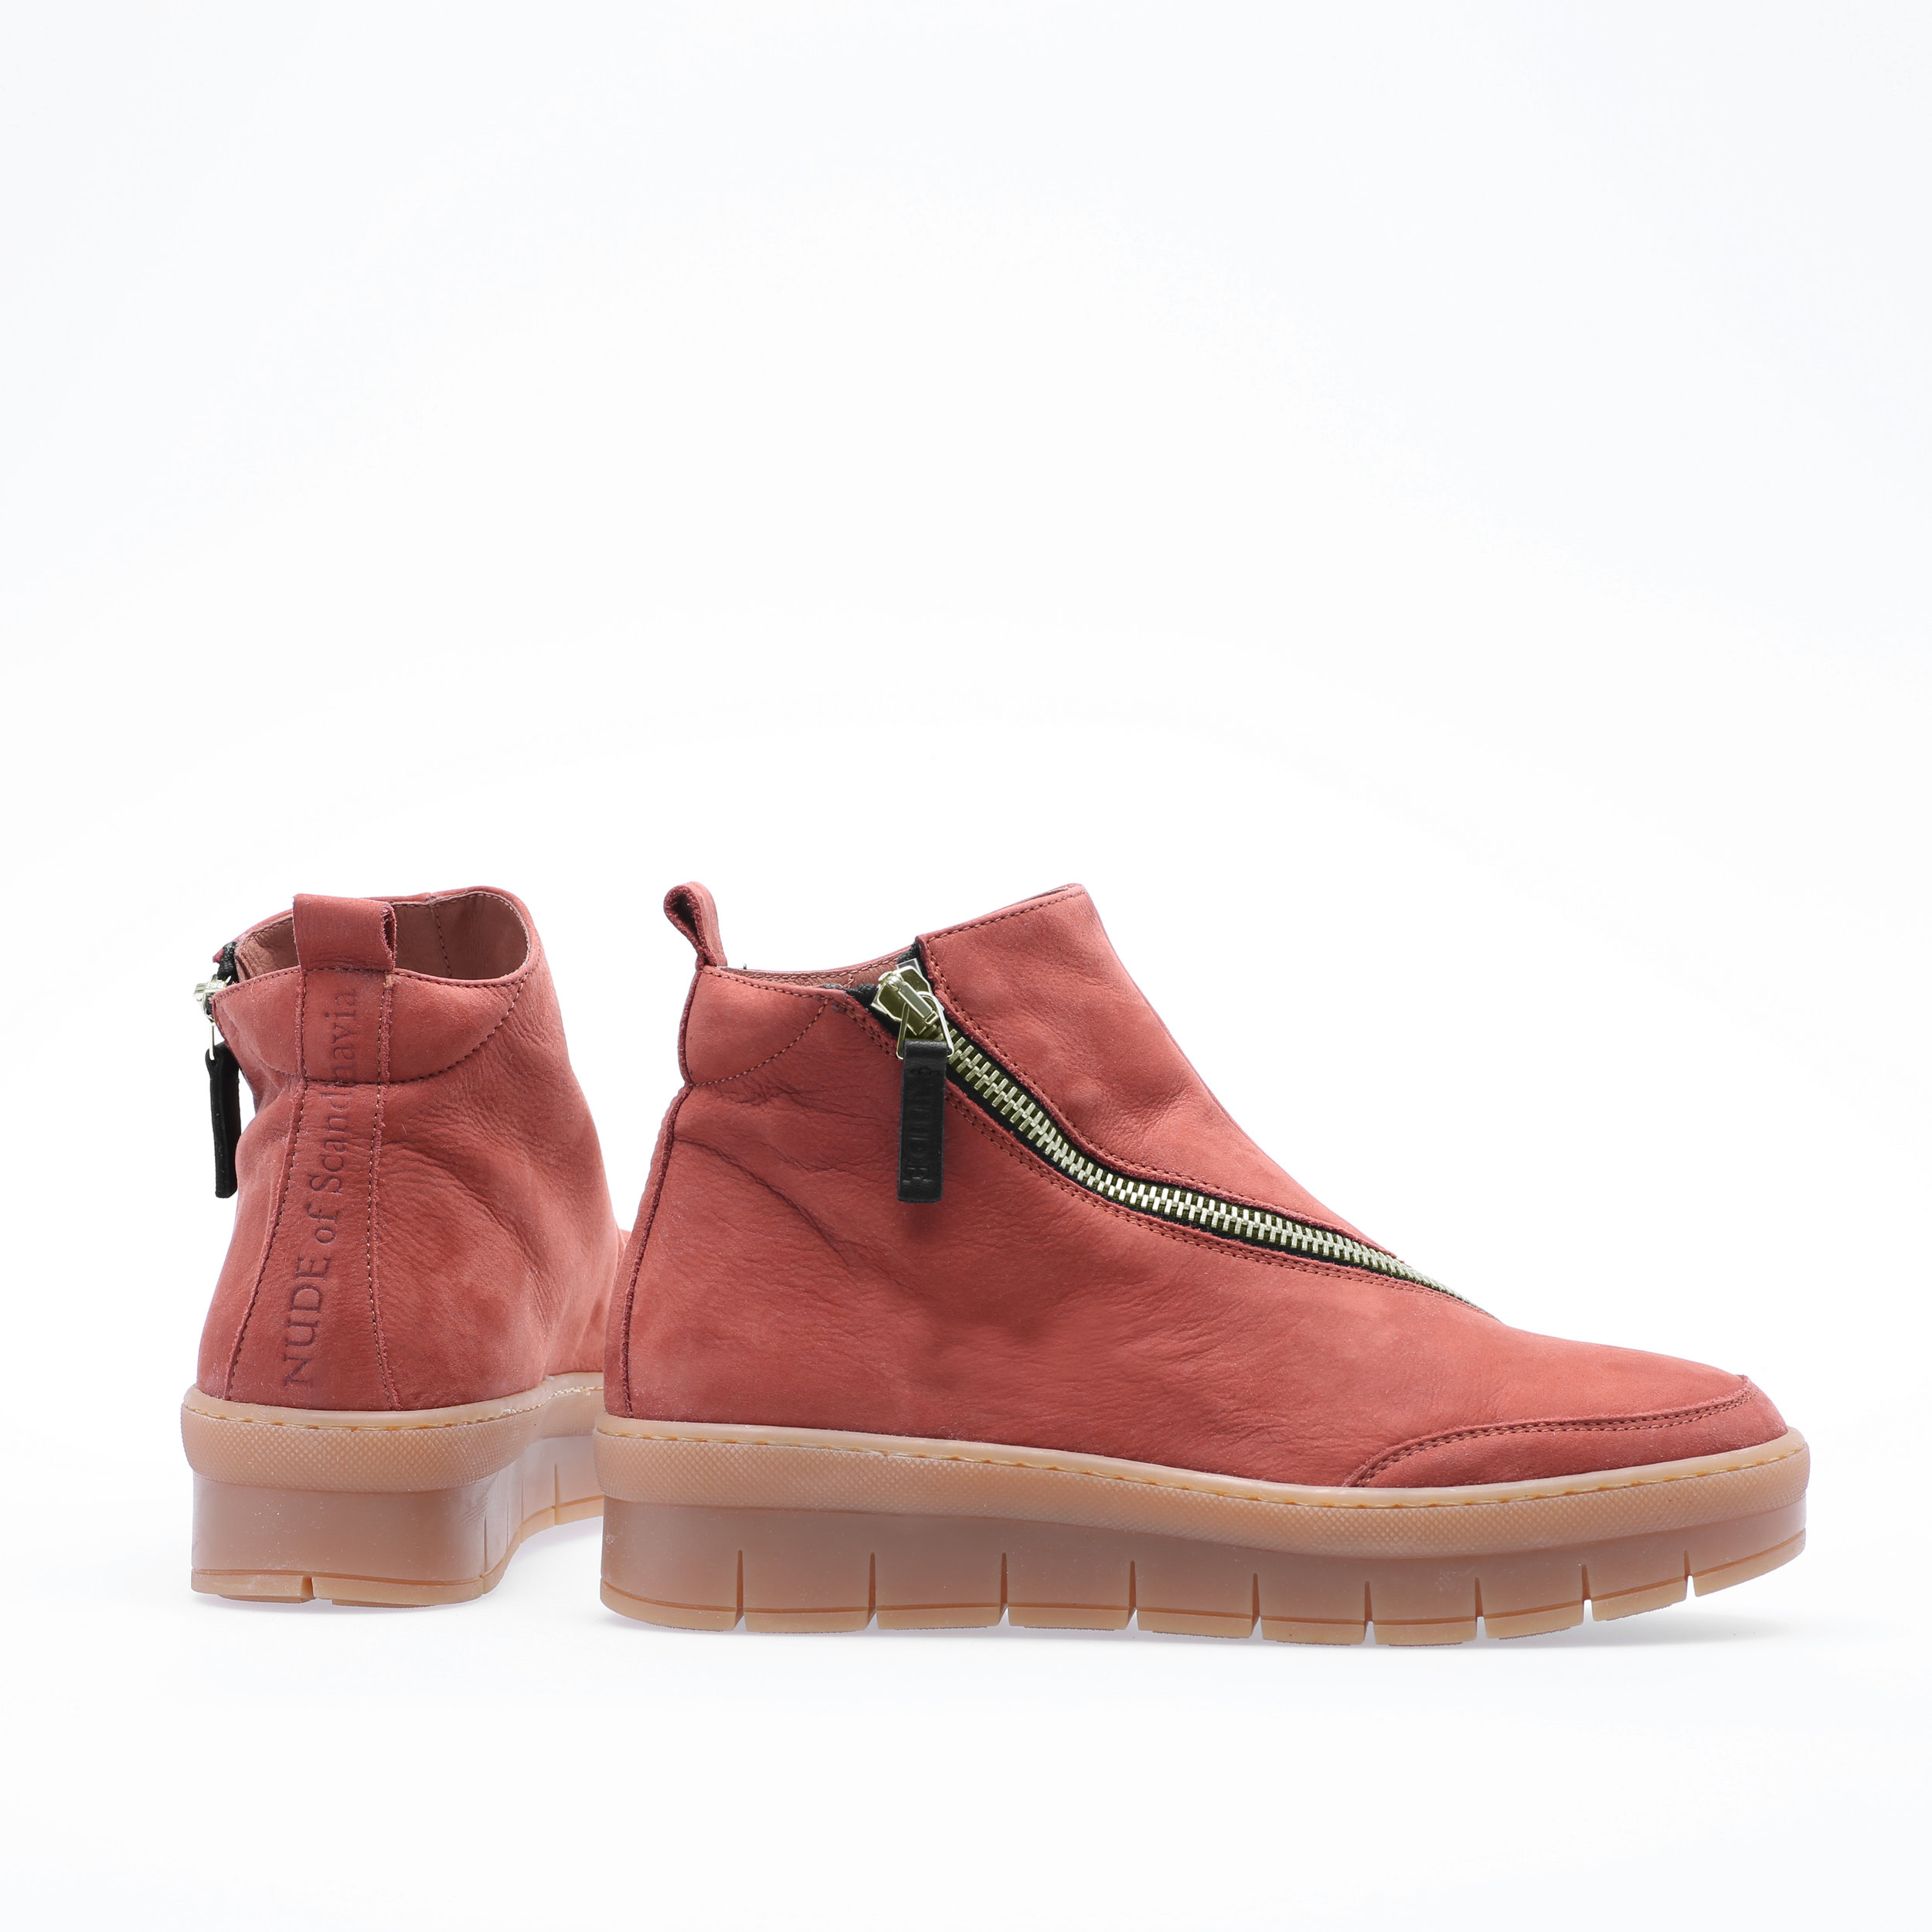 D - Everything is in the same color except thesole, which is always nature colored